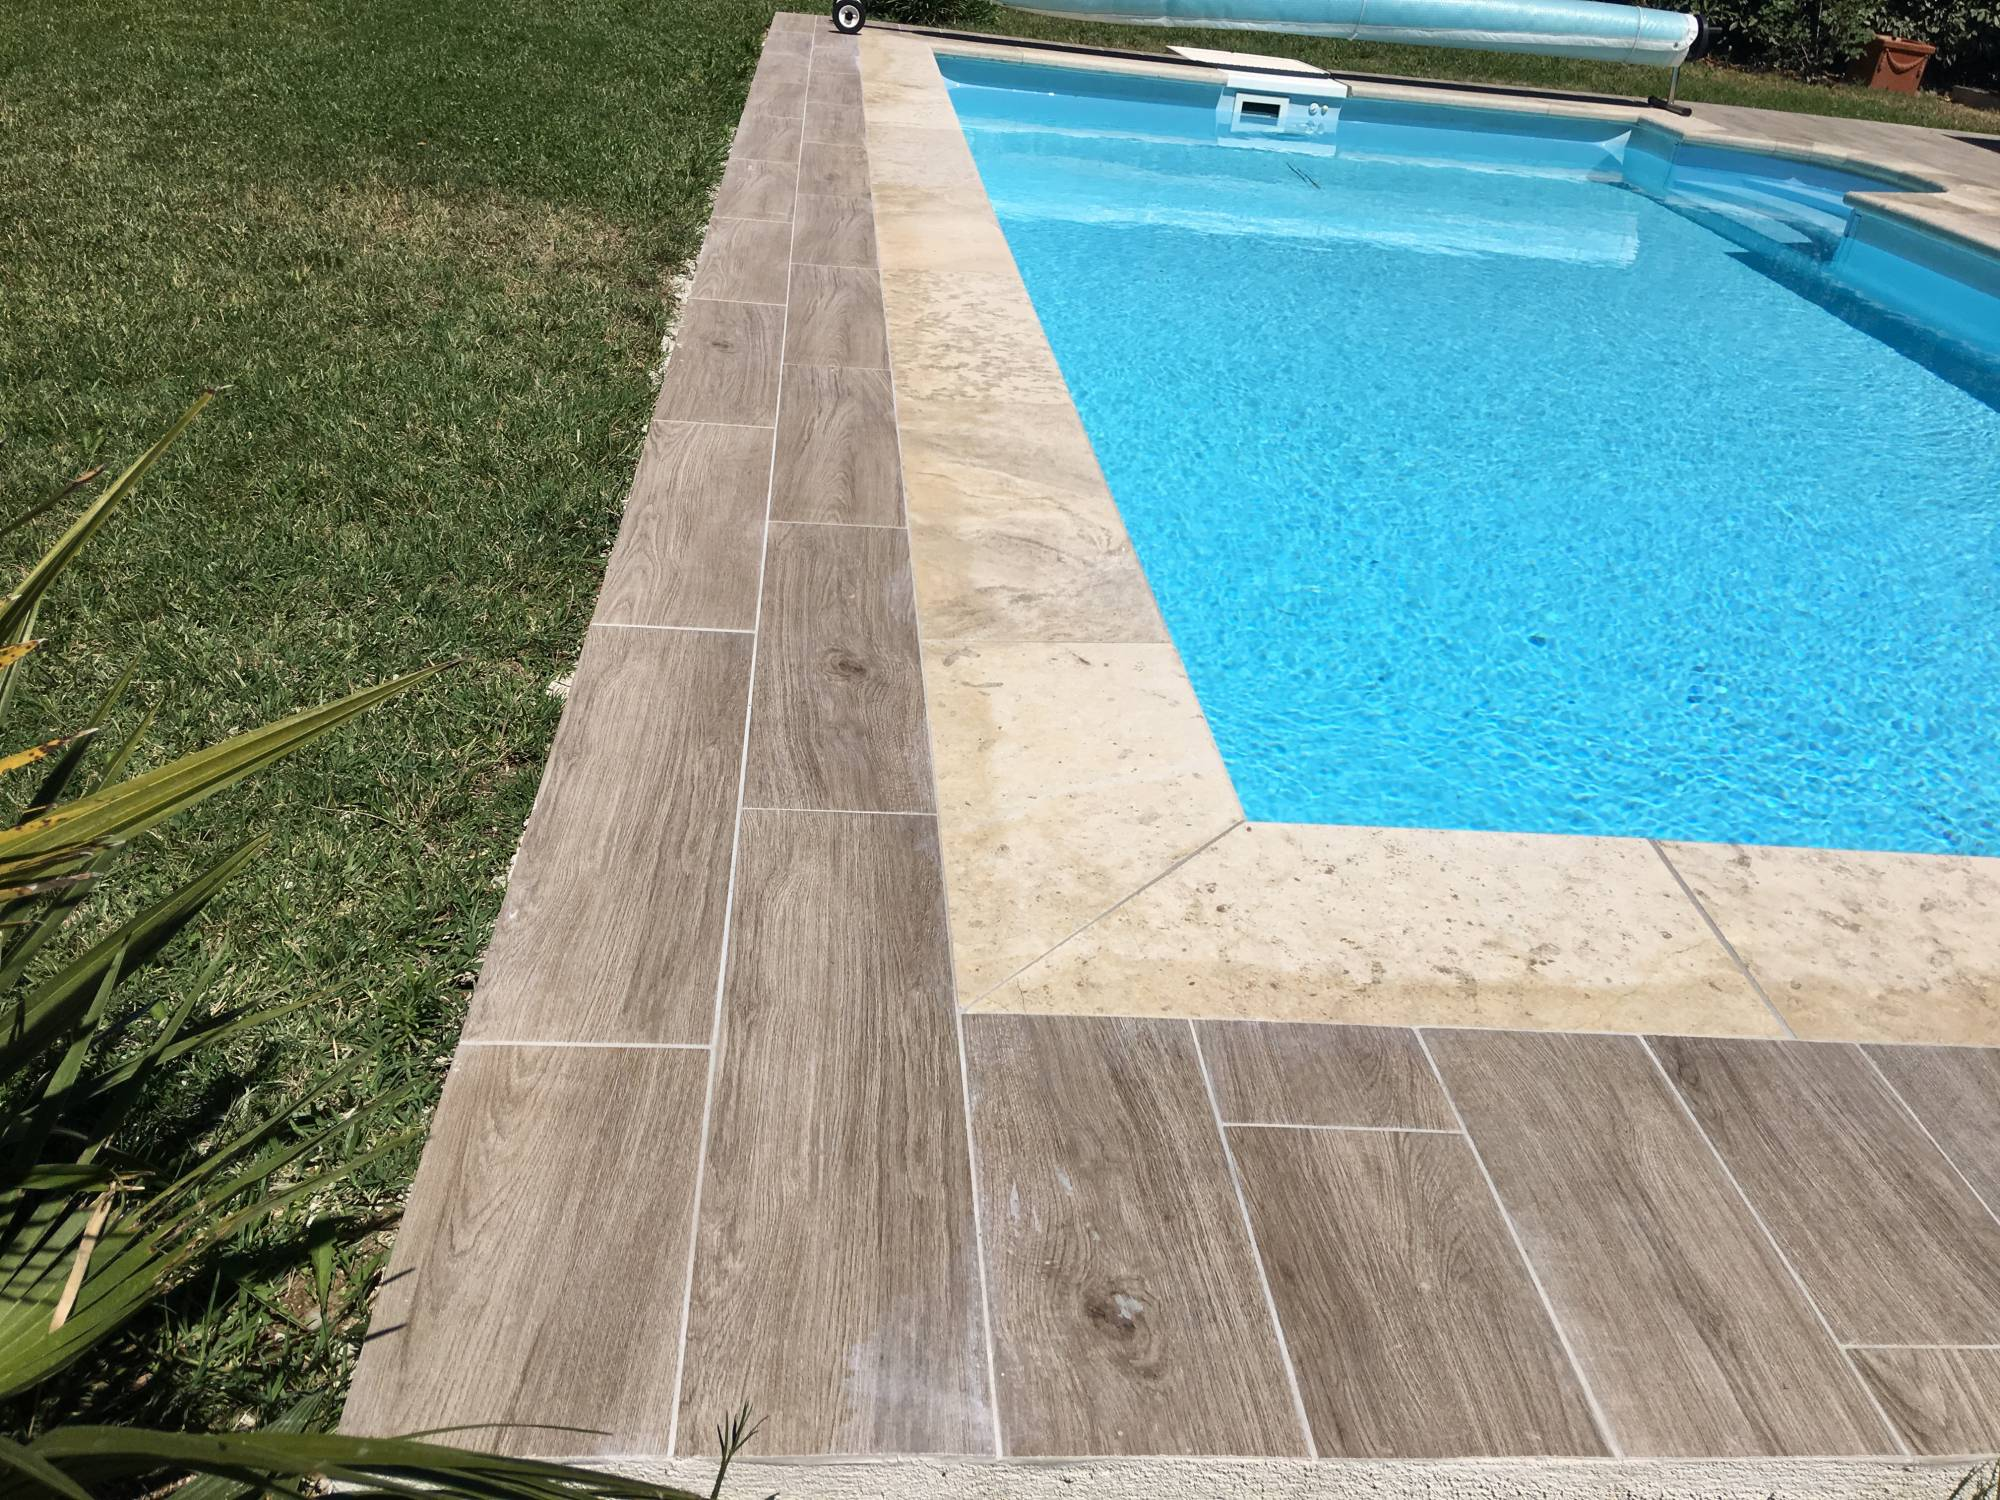 Piscine carrelage imitation bois margelles en pierre aix for Carrelage contour piscine